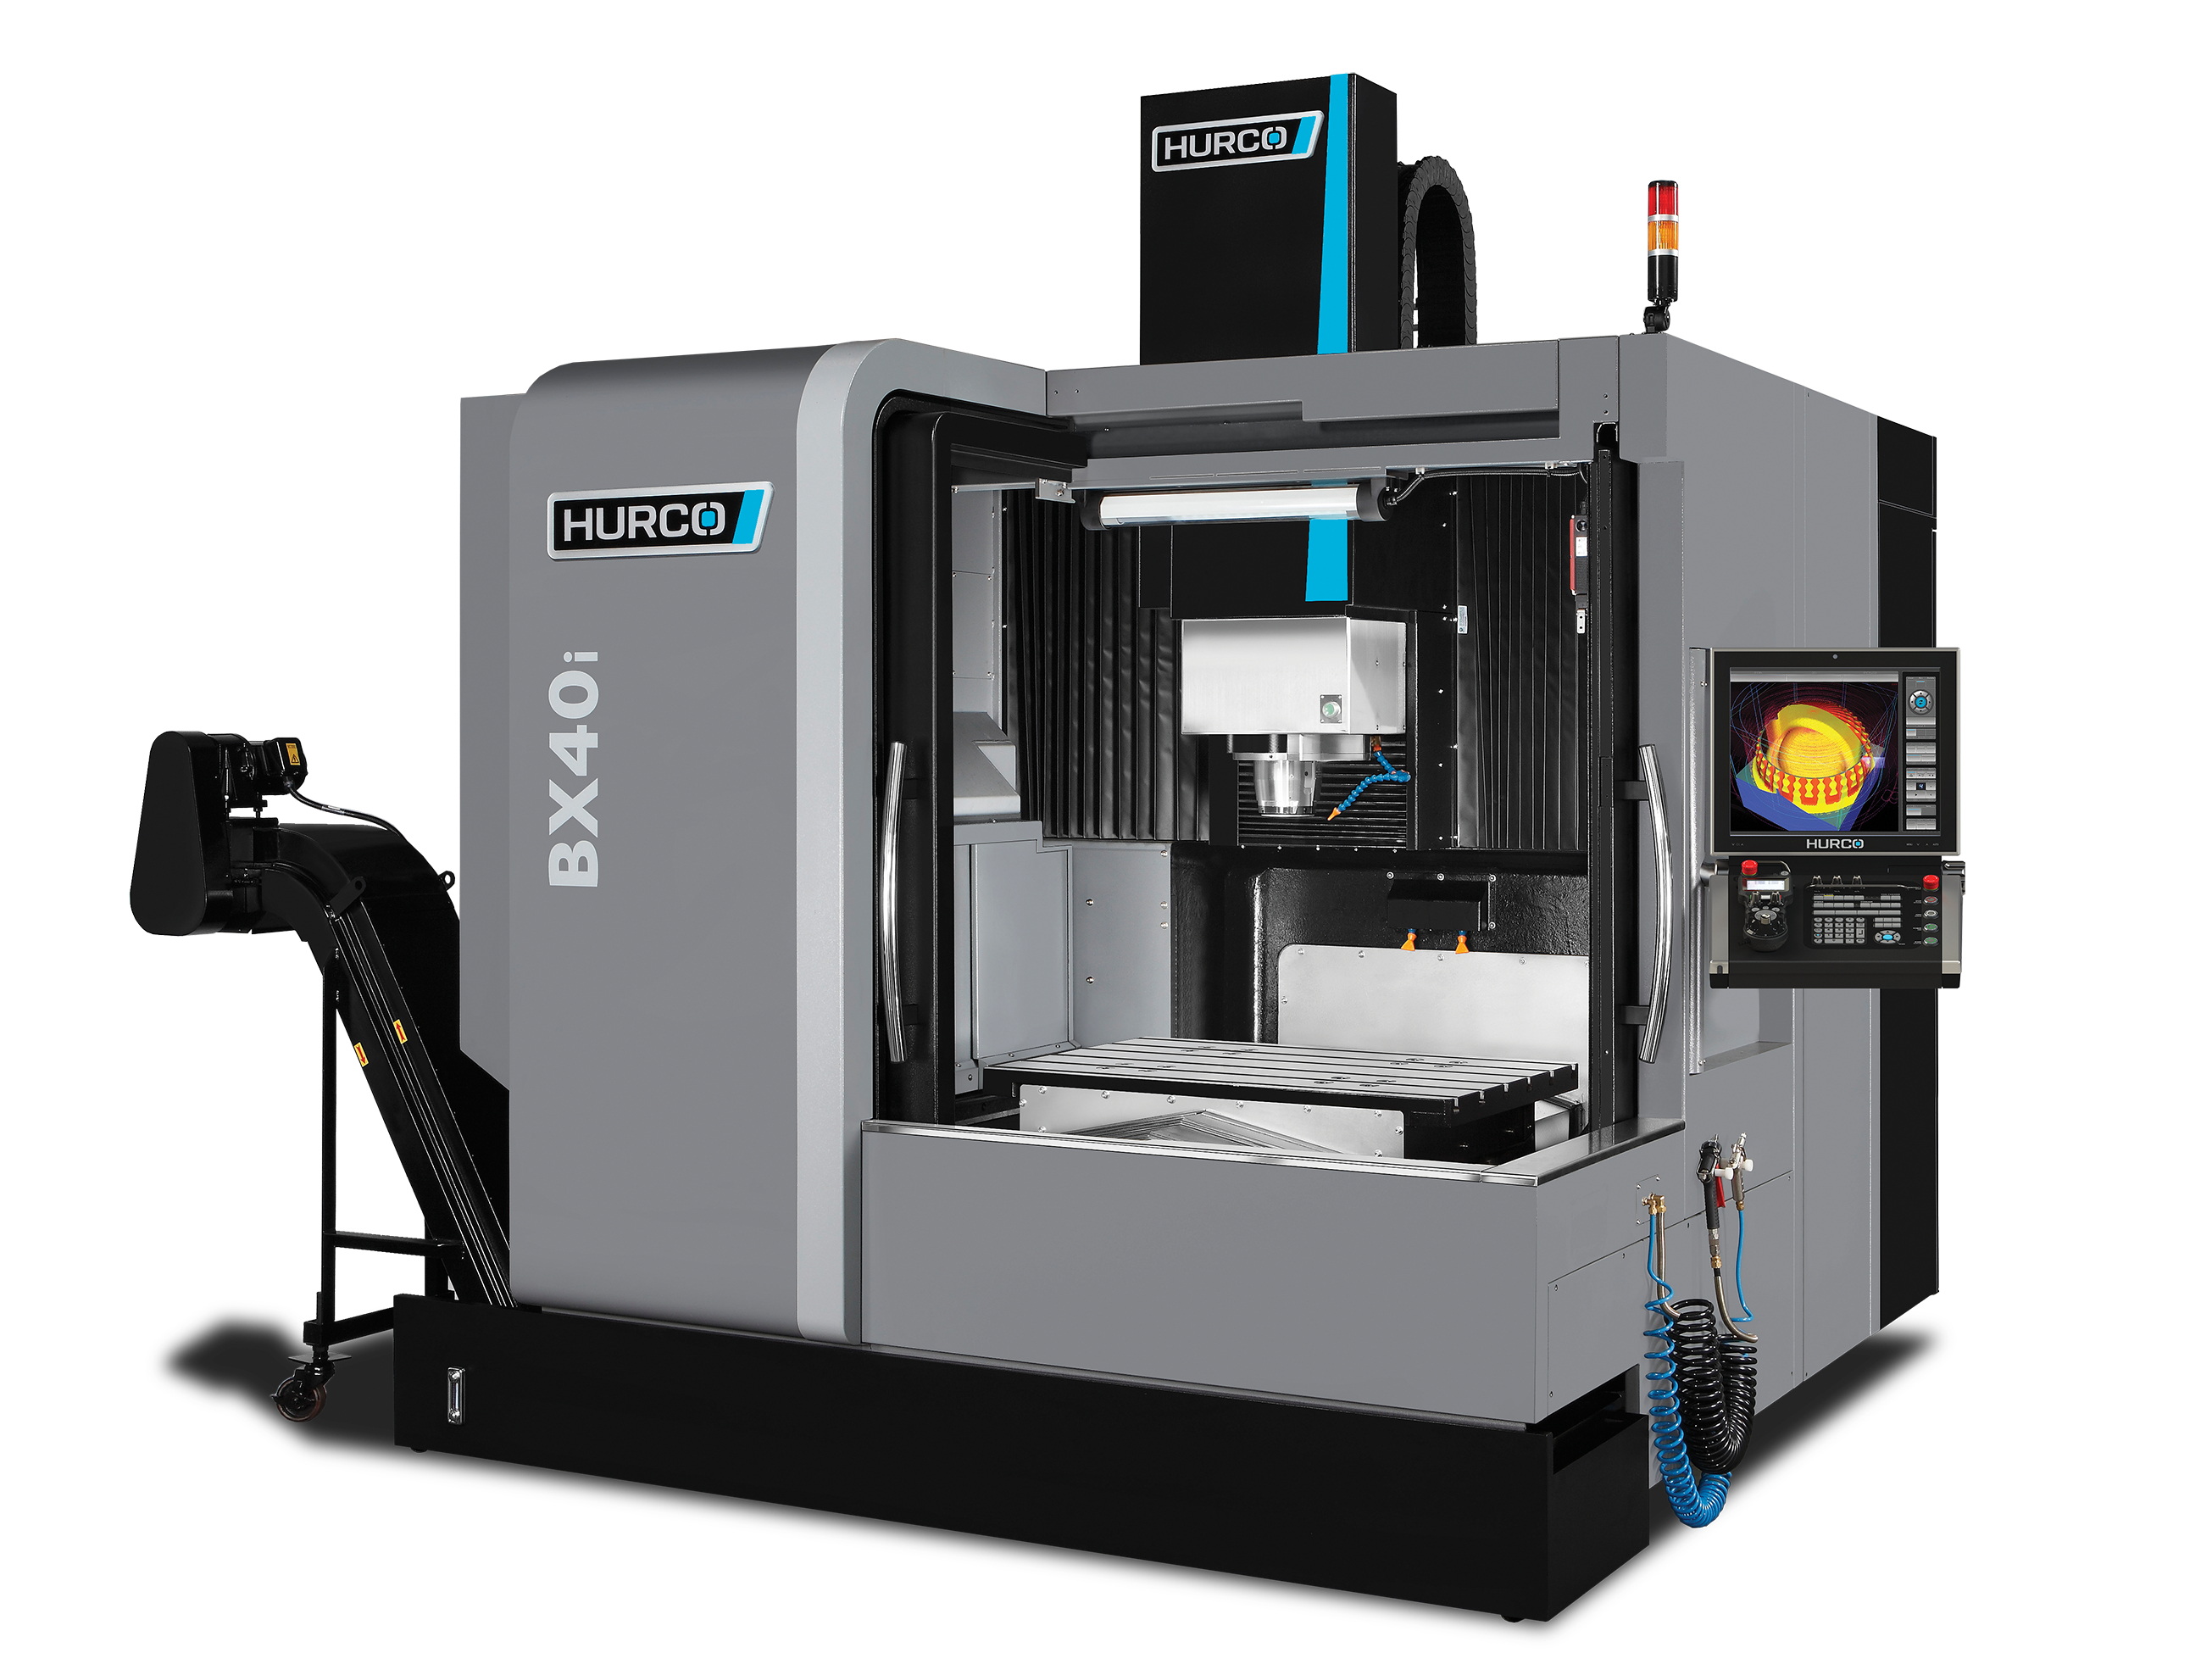 BX40i - High speed and accurancy for tight tolerances